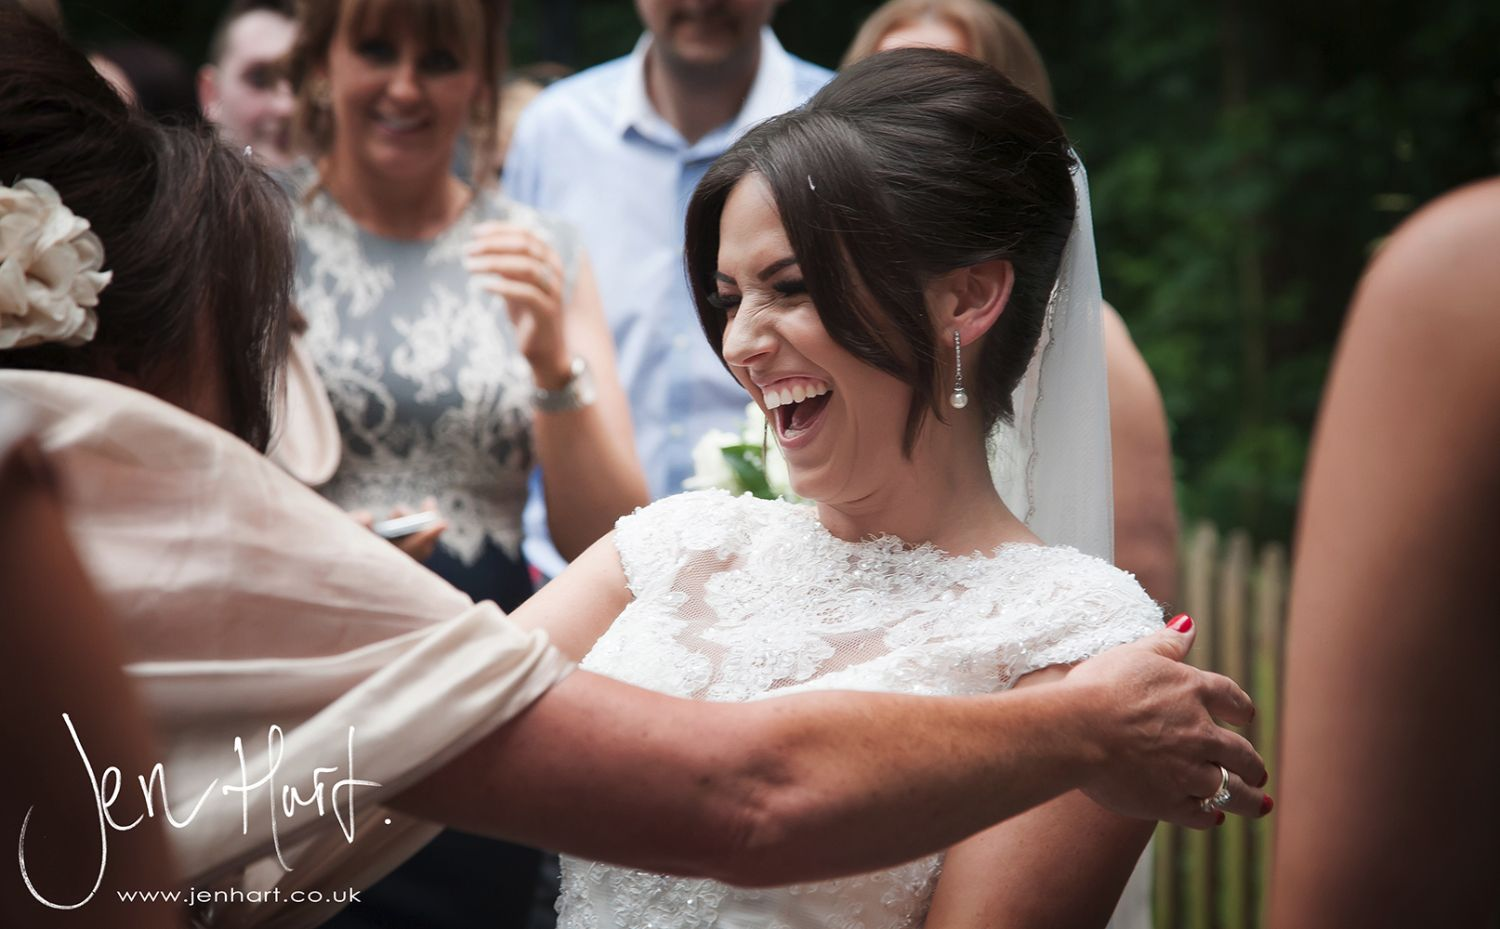 Photograph_Grinkle_Park_Wedding_Andrea&Rob_28JUN14_102_16